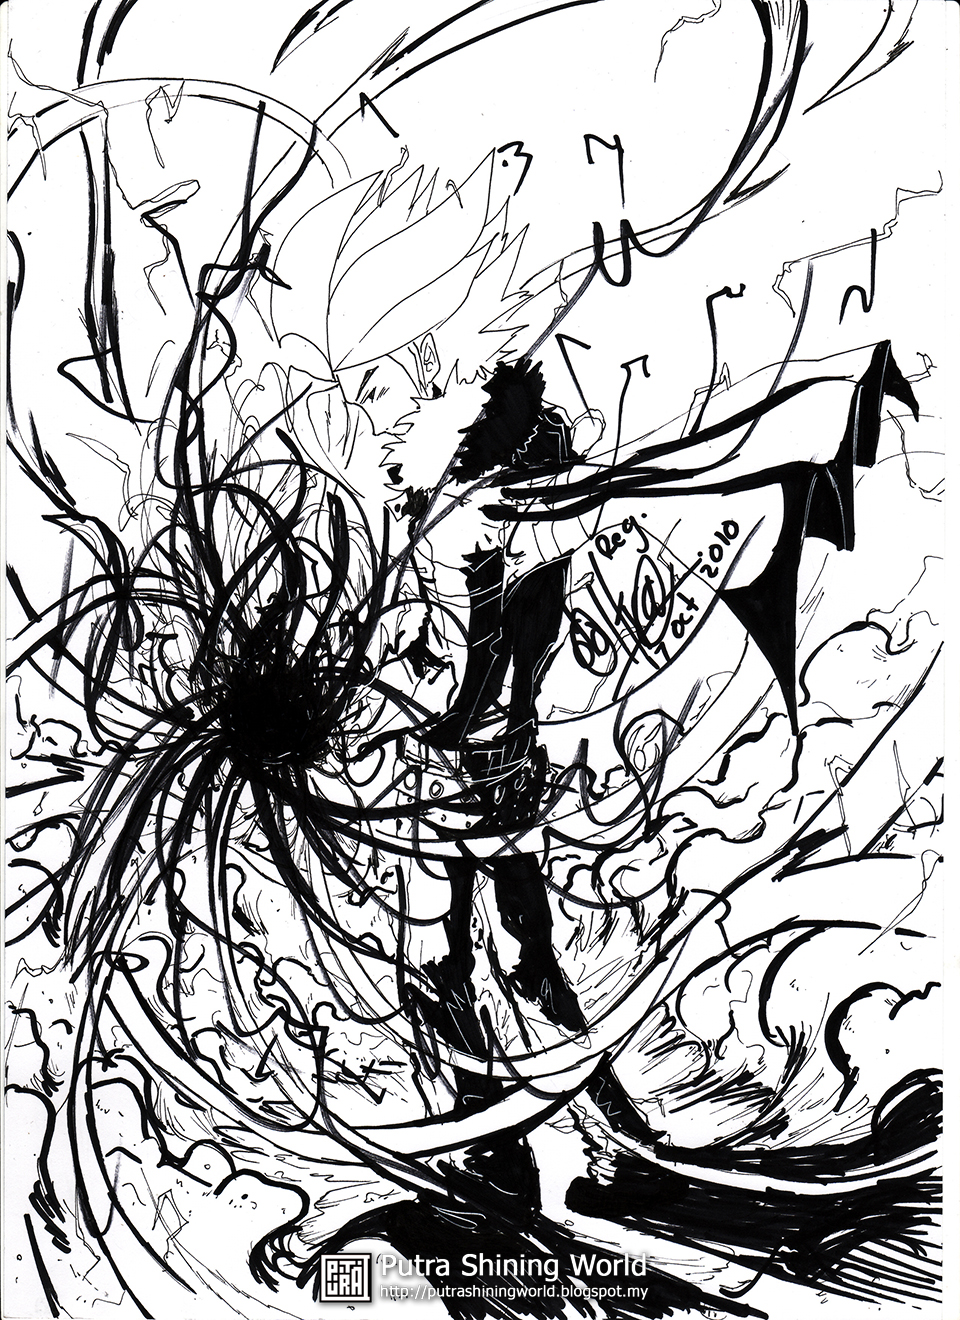 Drawing - Sketch - Black and White -  Comic - Fantasy by Putra Shining